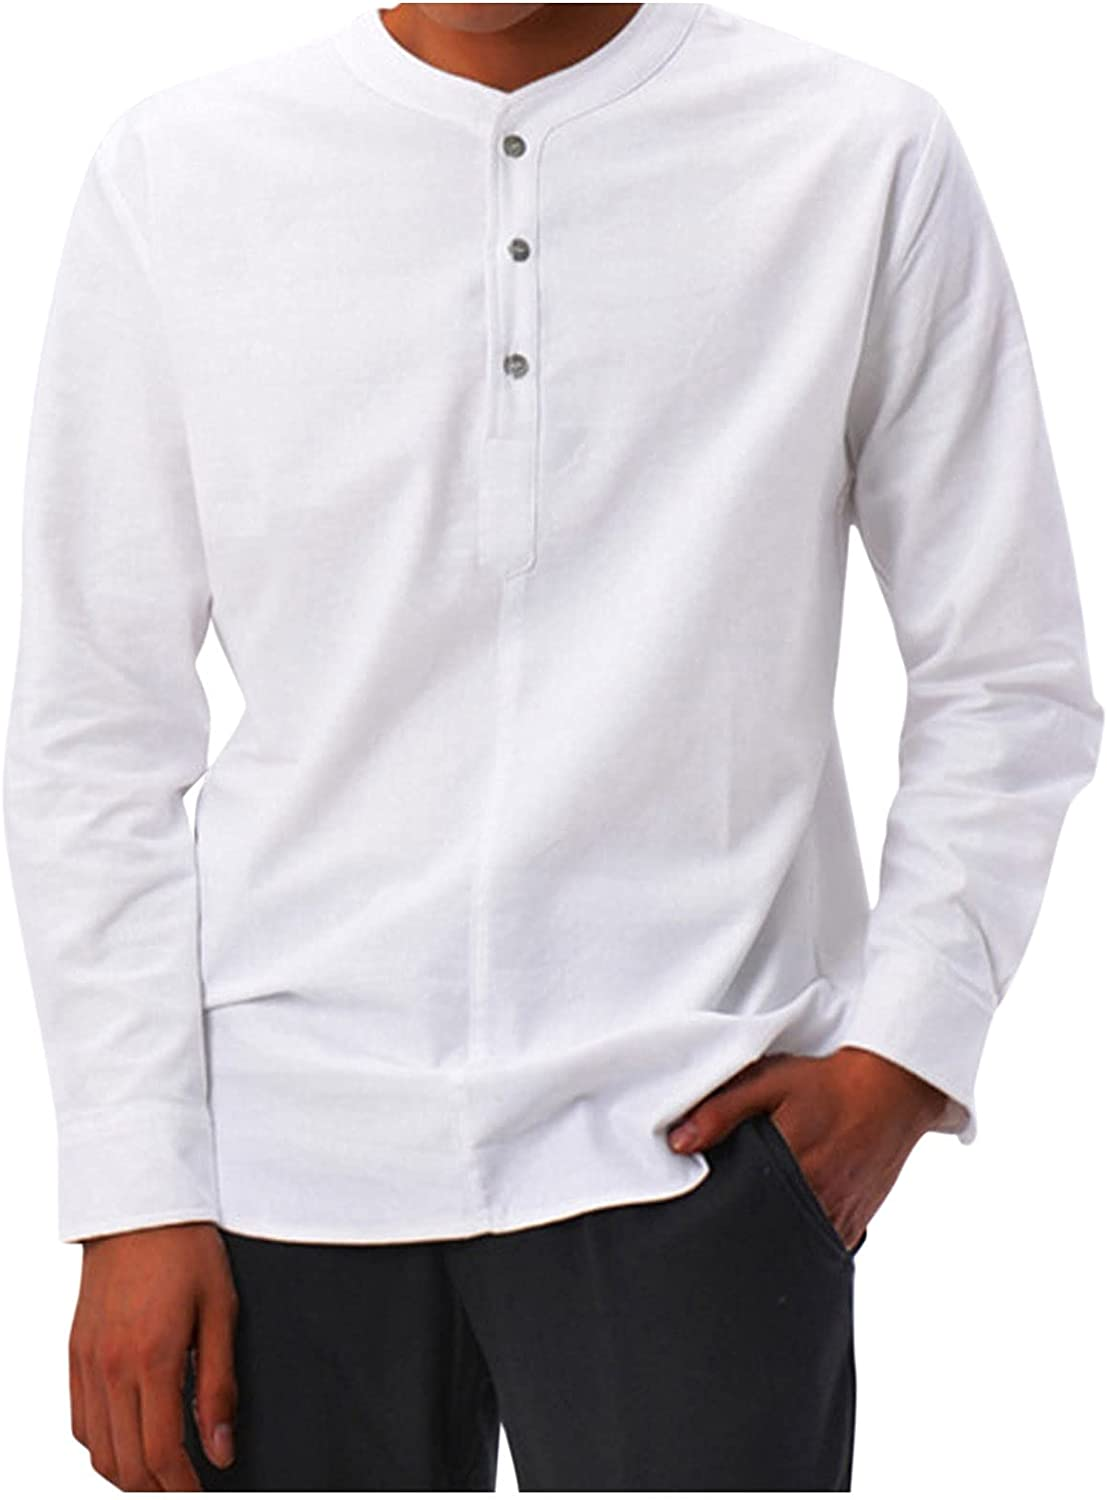 Henley Shirt for Men Autumn Max 61% OFF Long Solid Sleeve Max 53% OFF up Color Ca Button